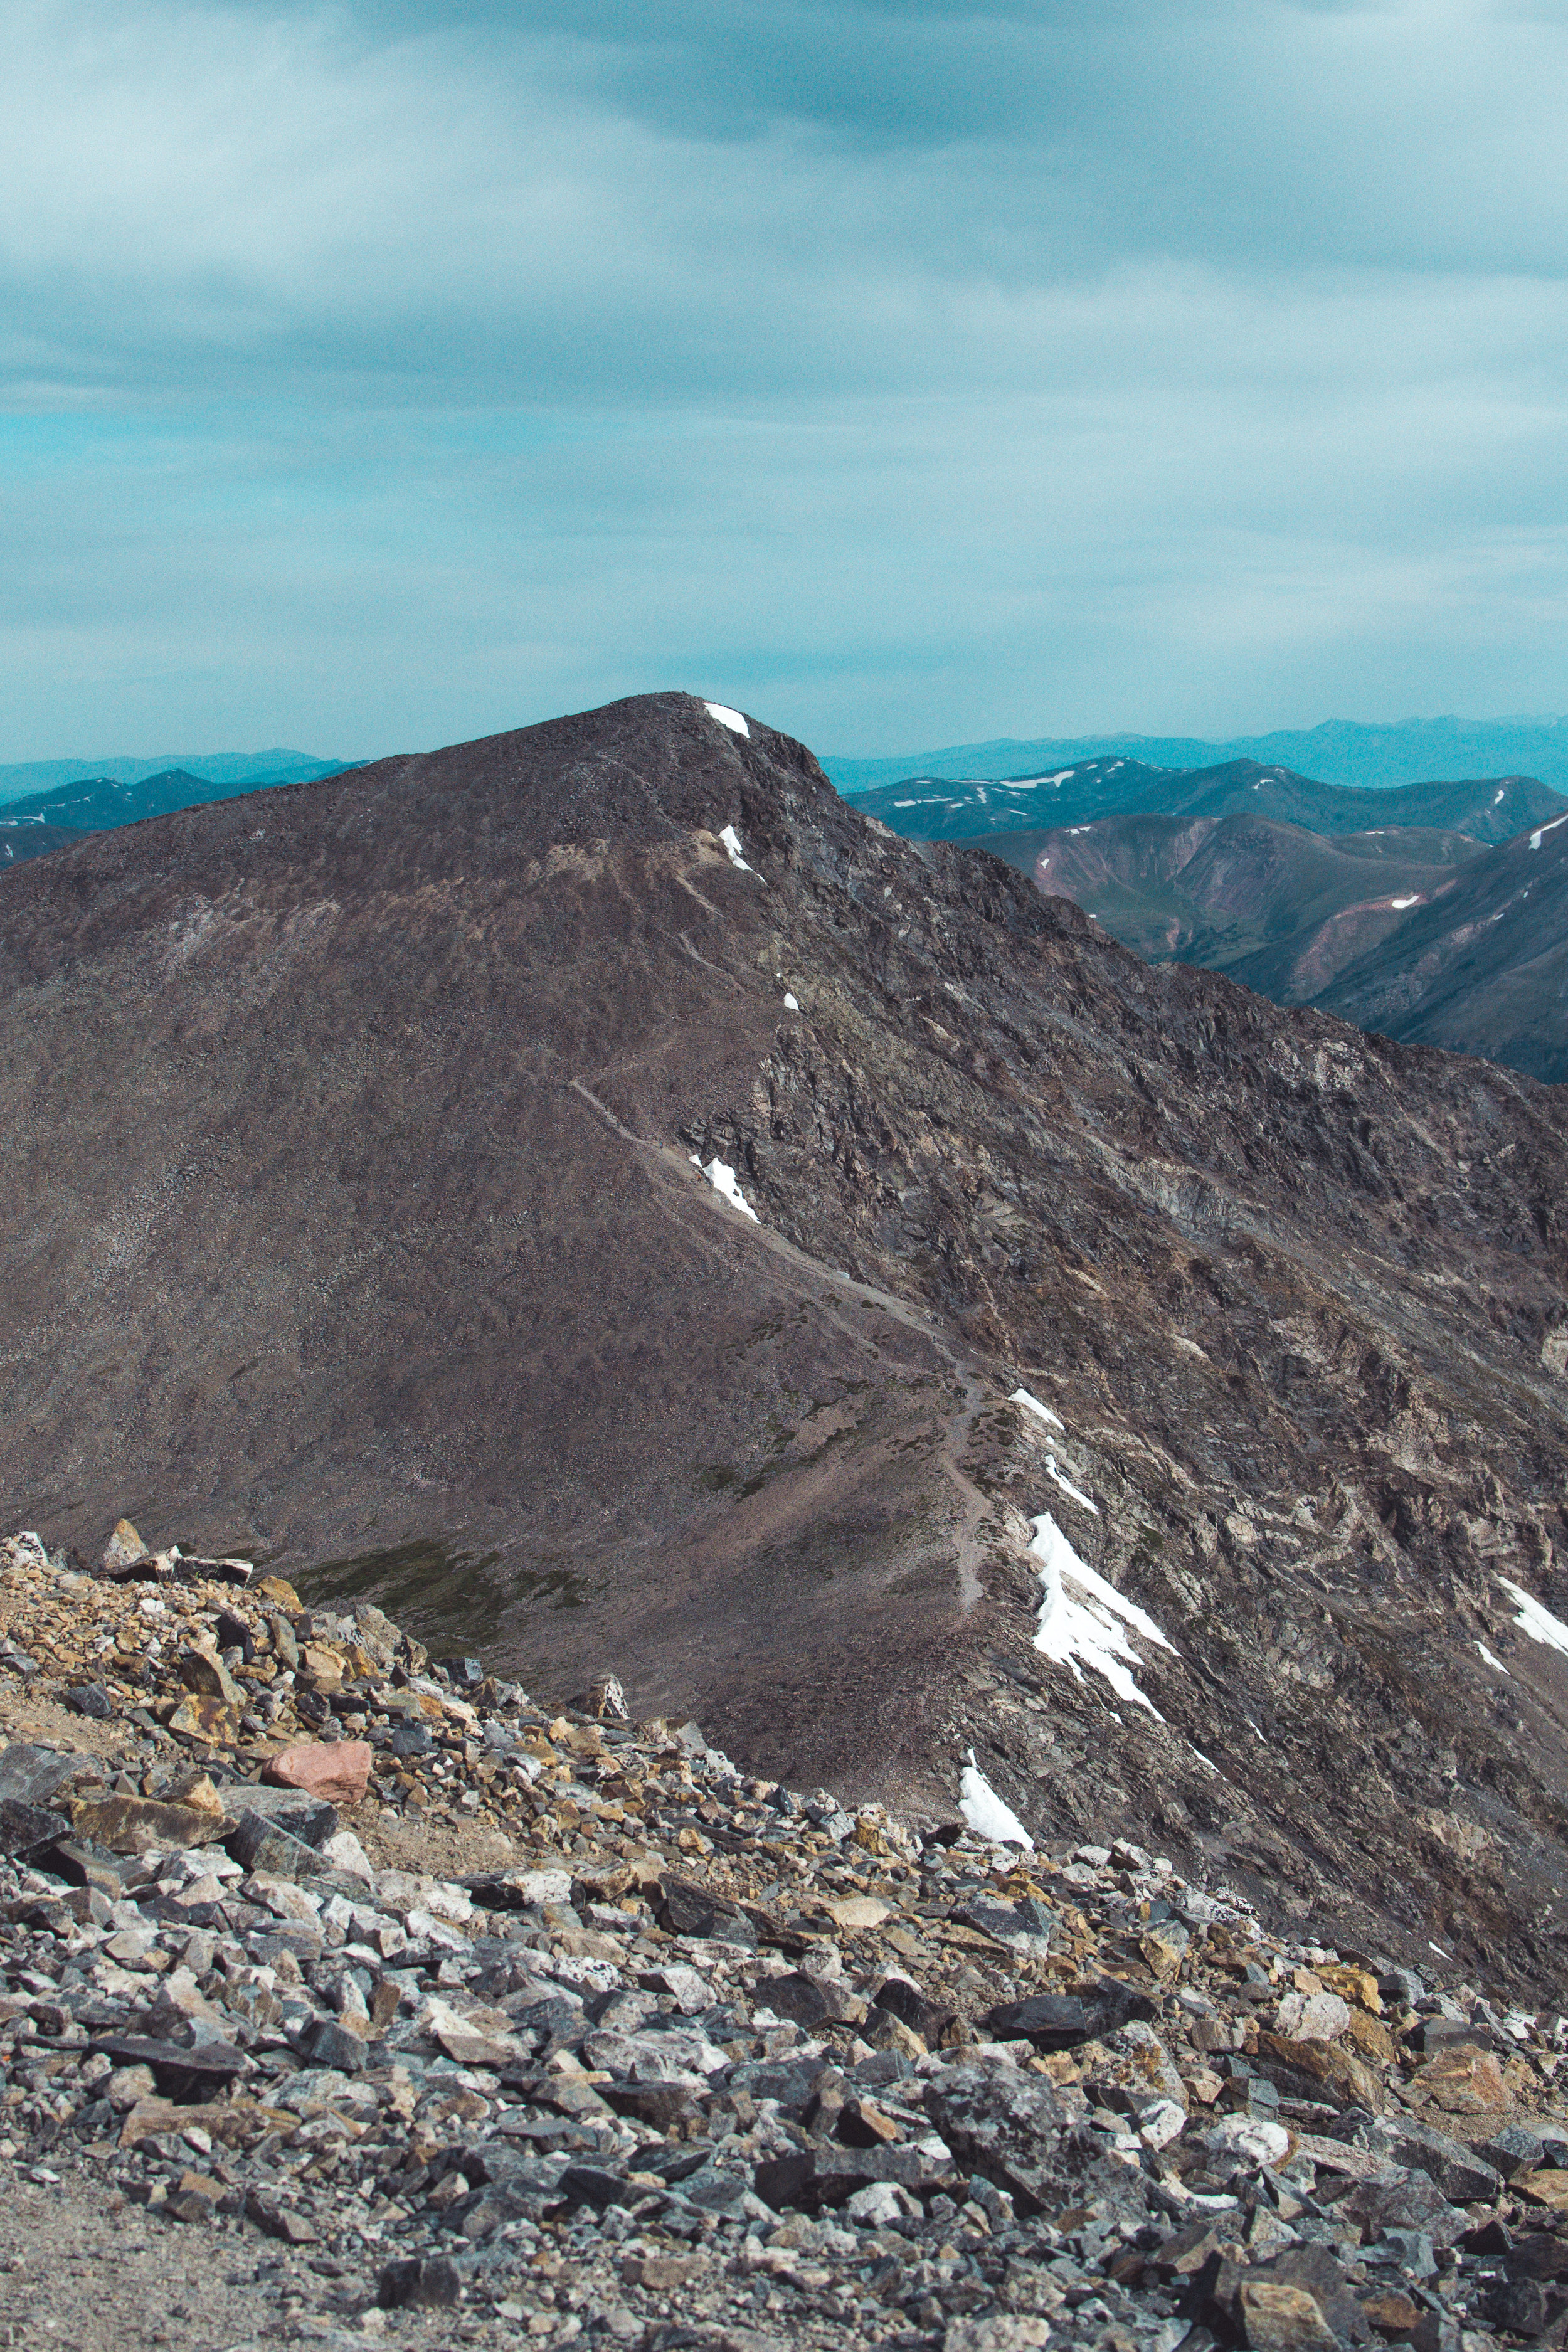 The view of Torreys from Grays and the saddle between the two peaks.